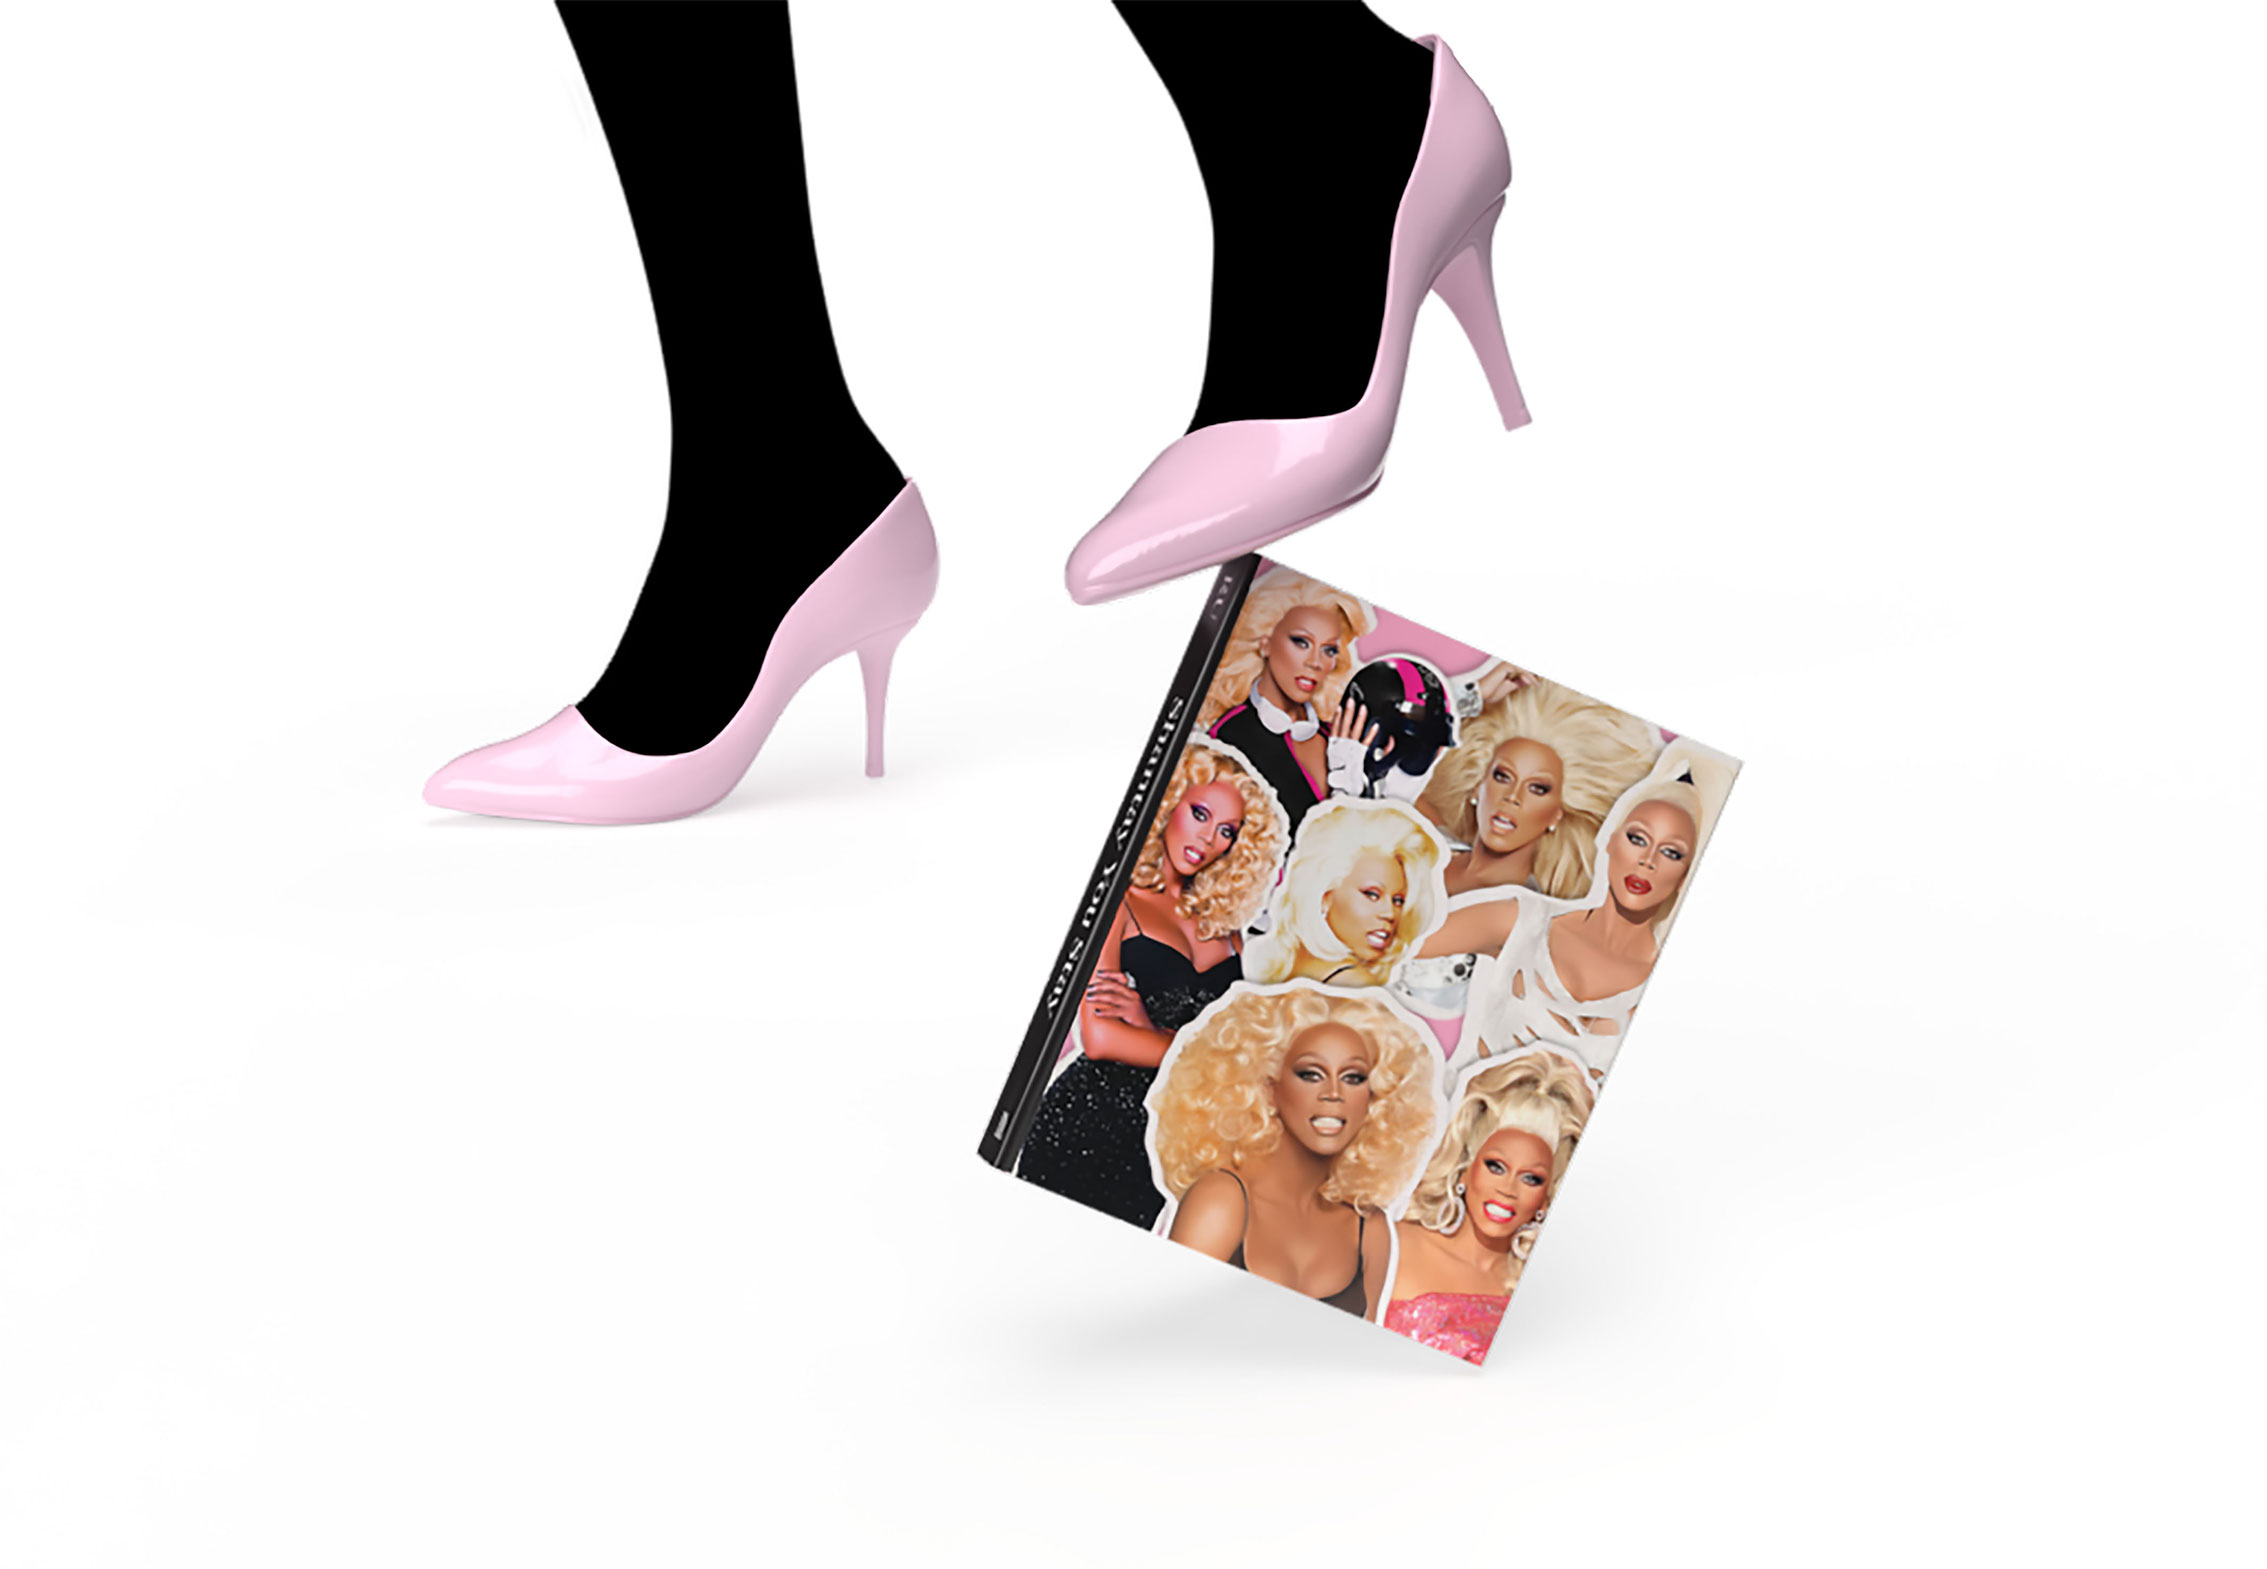 A person with pair of high heels stepping on a book